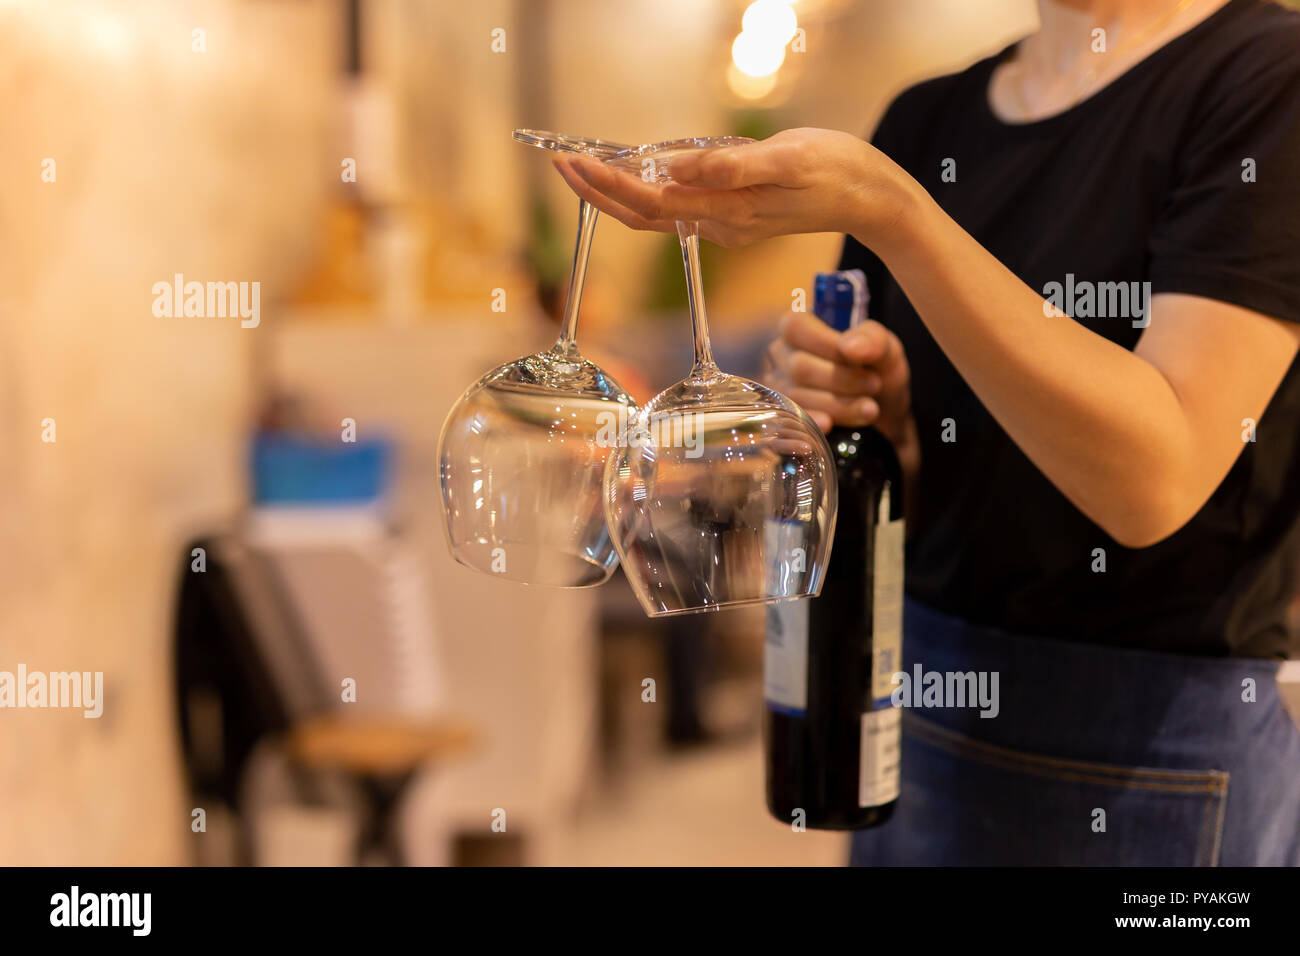 Glass of wing in waitress is hand with bottle red wine in background. Stock Photo